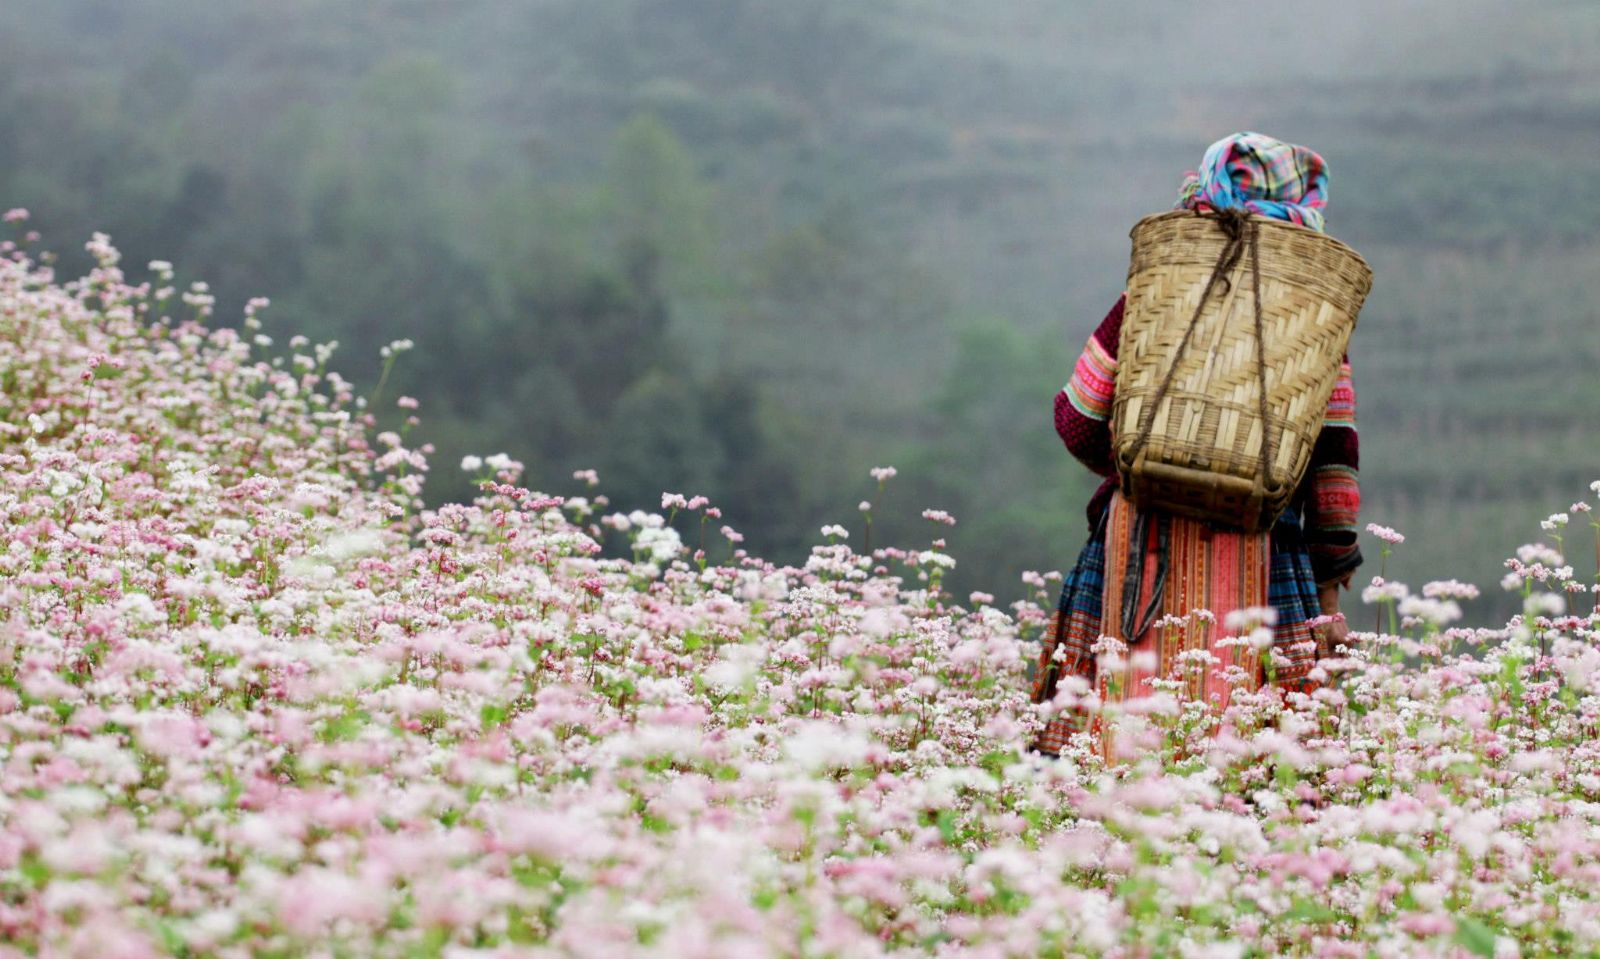 The child goes through the buckwheat flower field to go to school